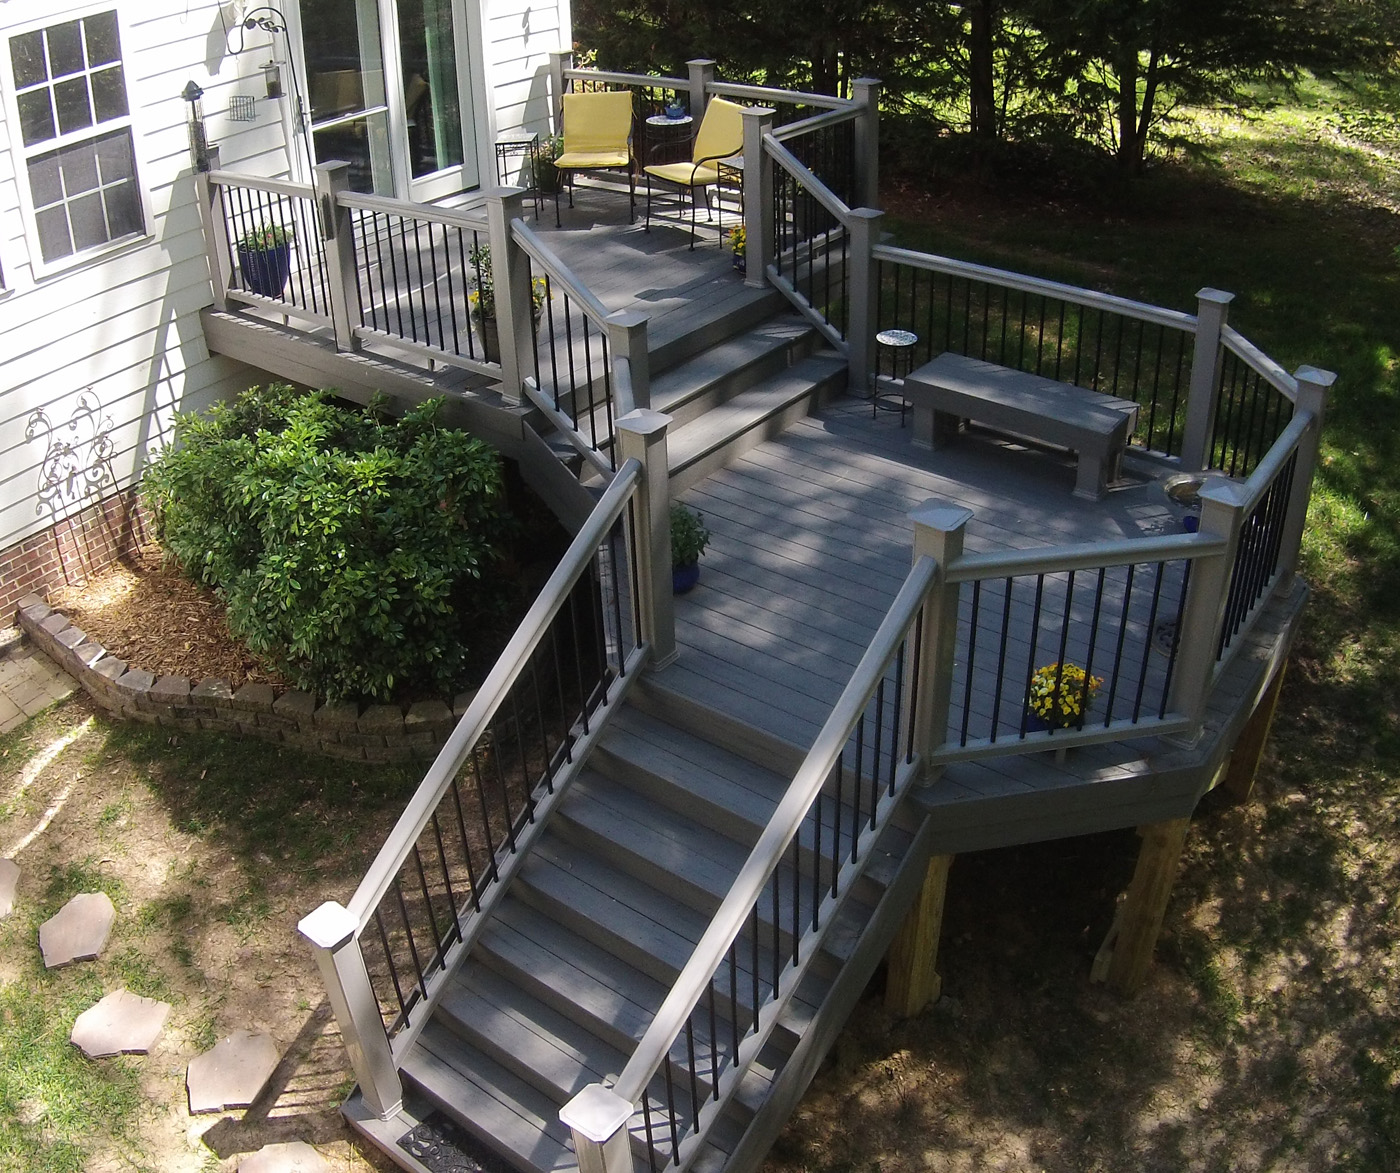 Durham Multi Level%20Timber Tech%20Deck%20With%20Modern%20Design